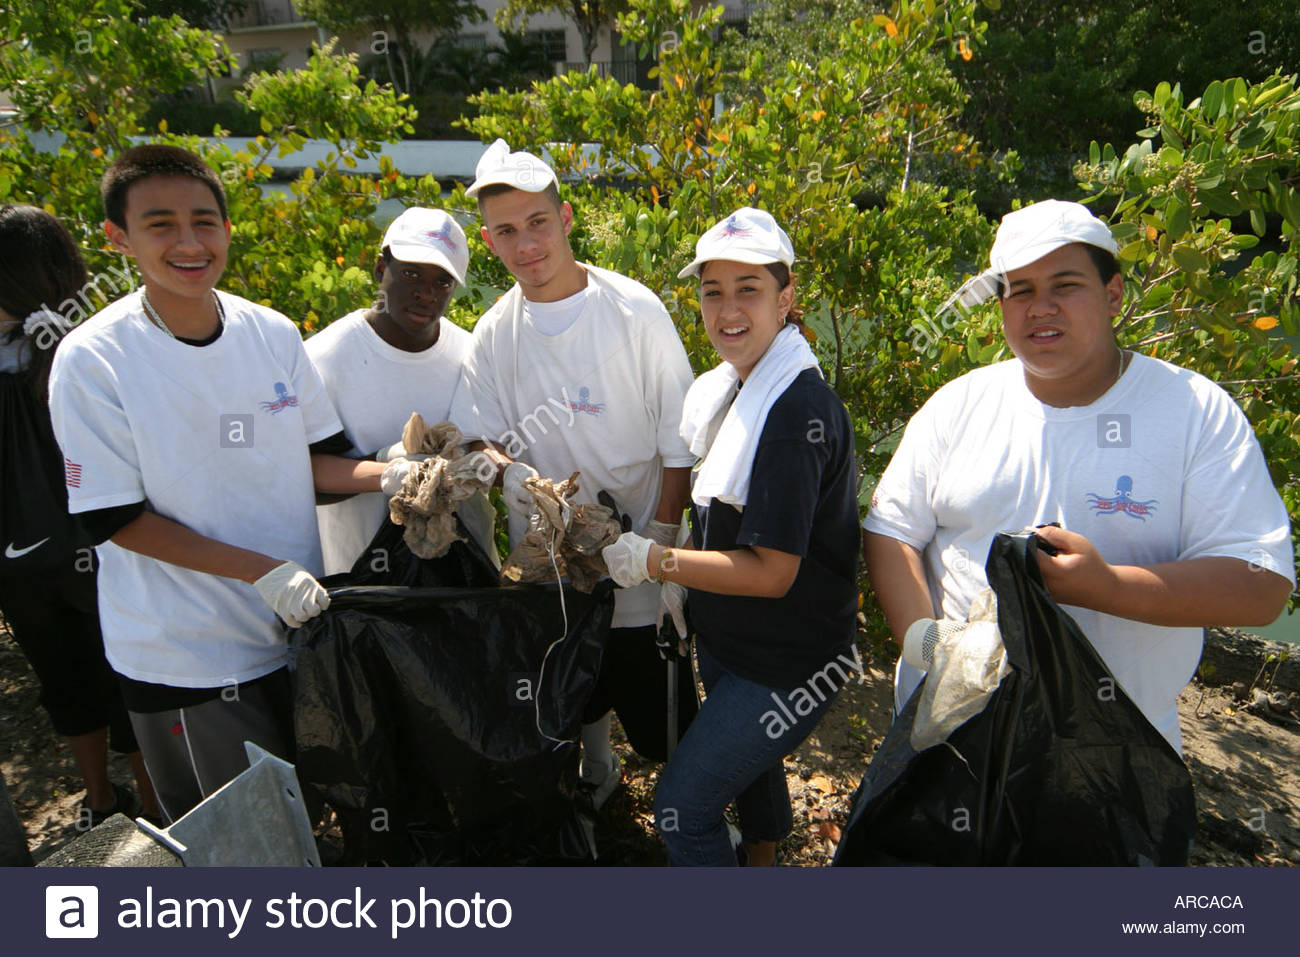 miami beach florida dade canal teen job corps students adults miami beach florida dade canal teen job corps students adults cleaning collecting trash pollution environment